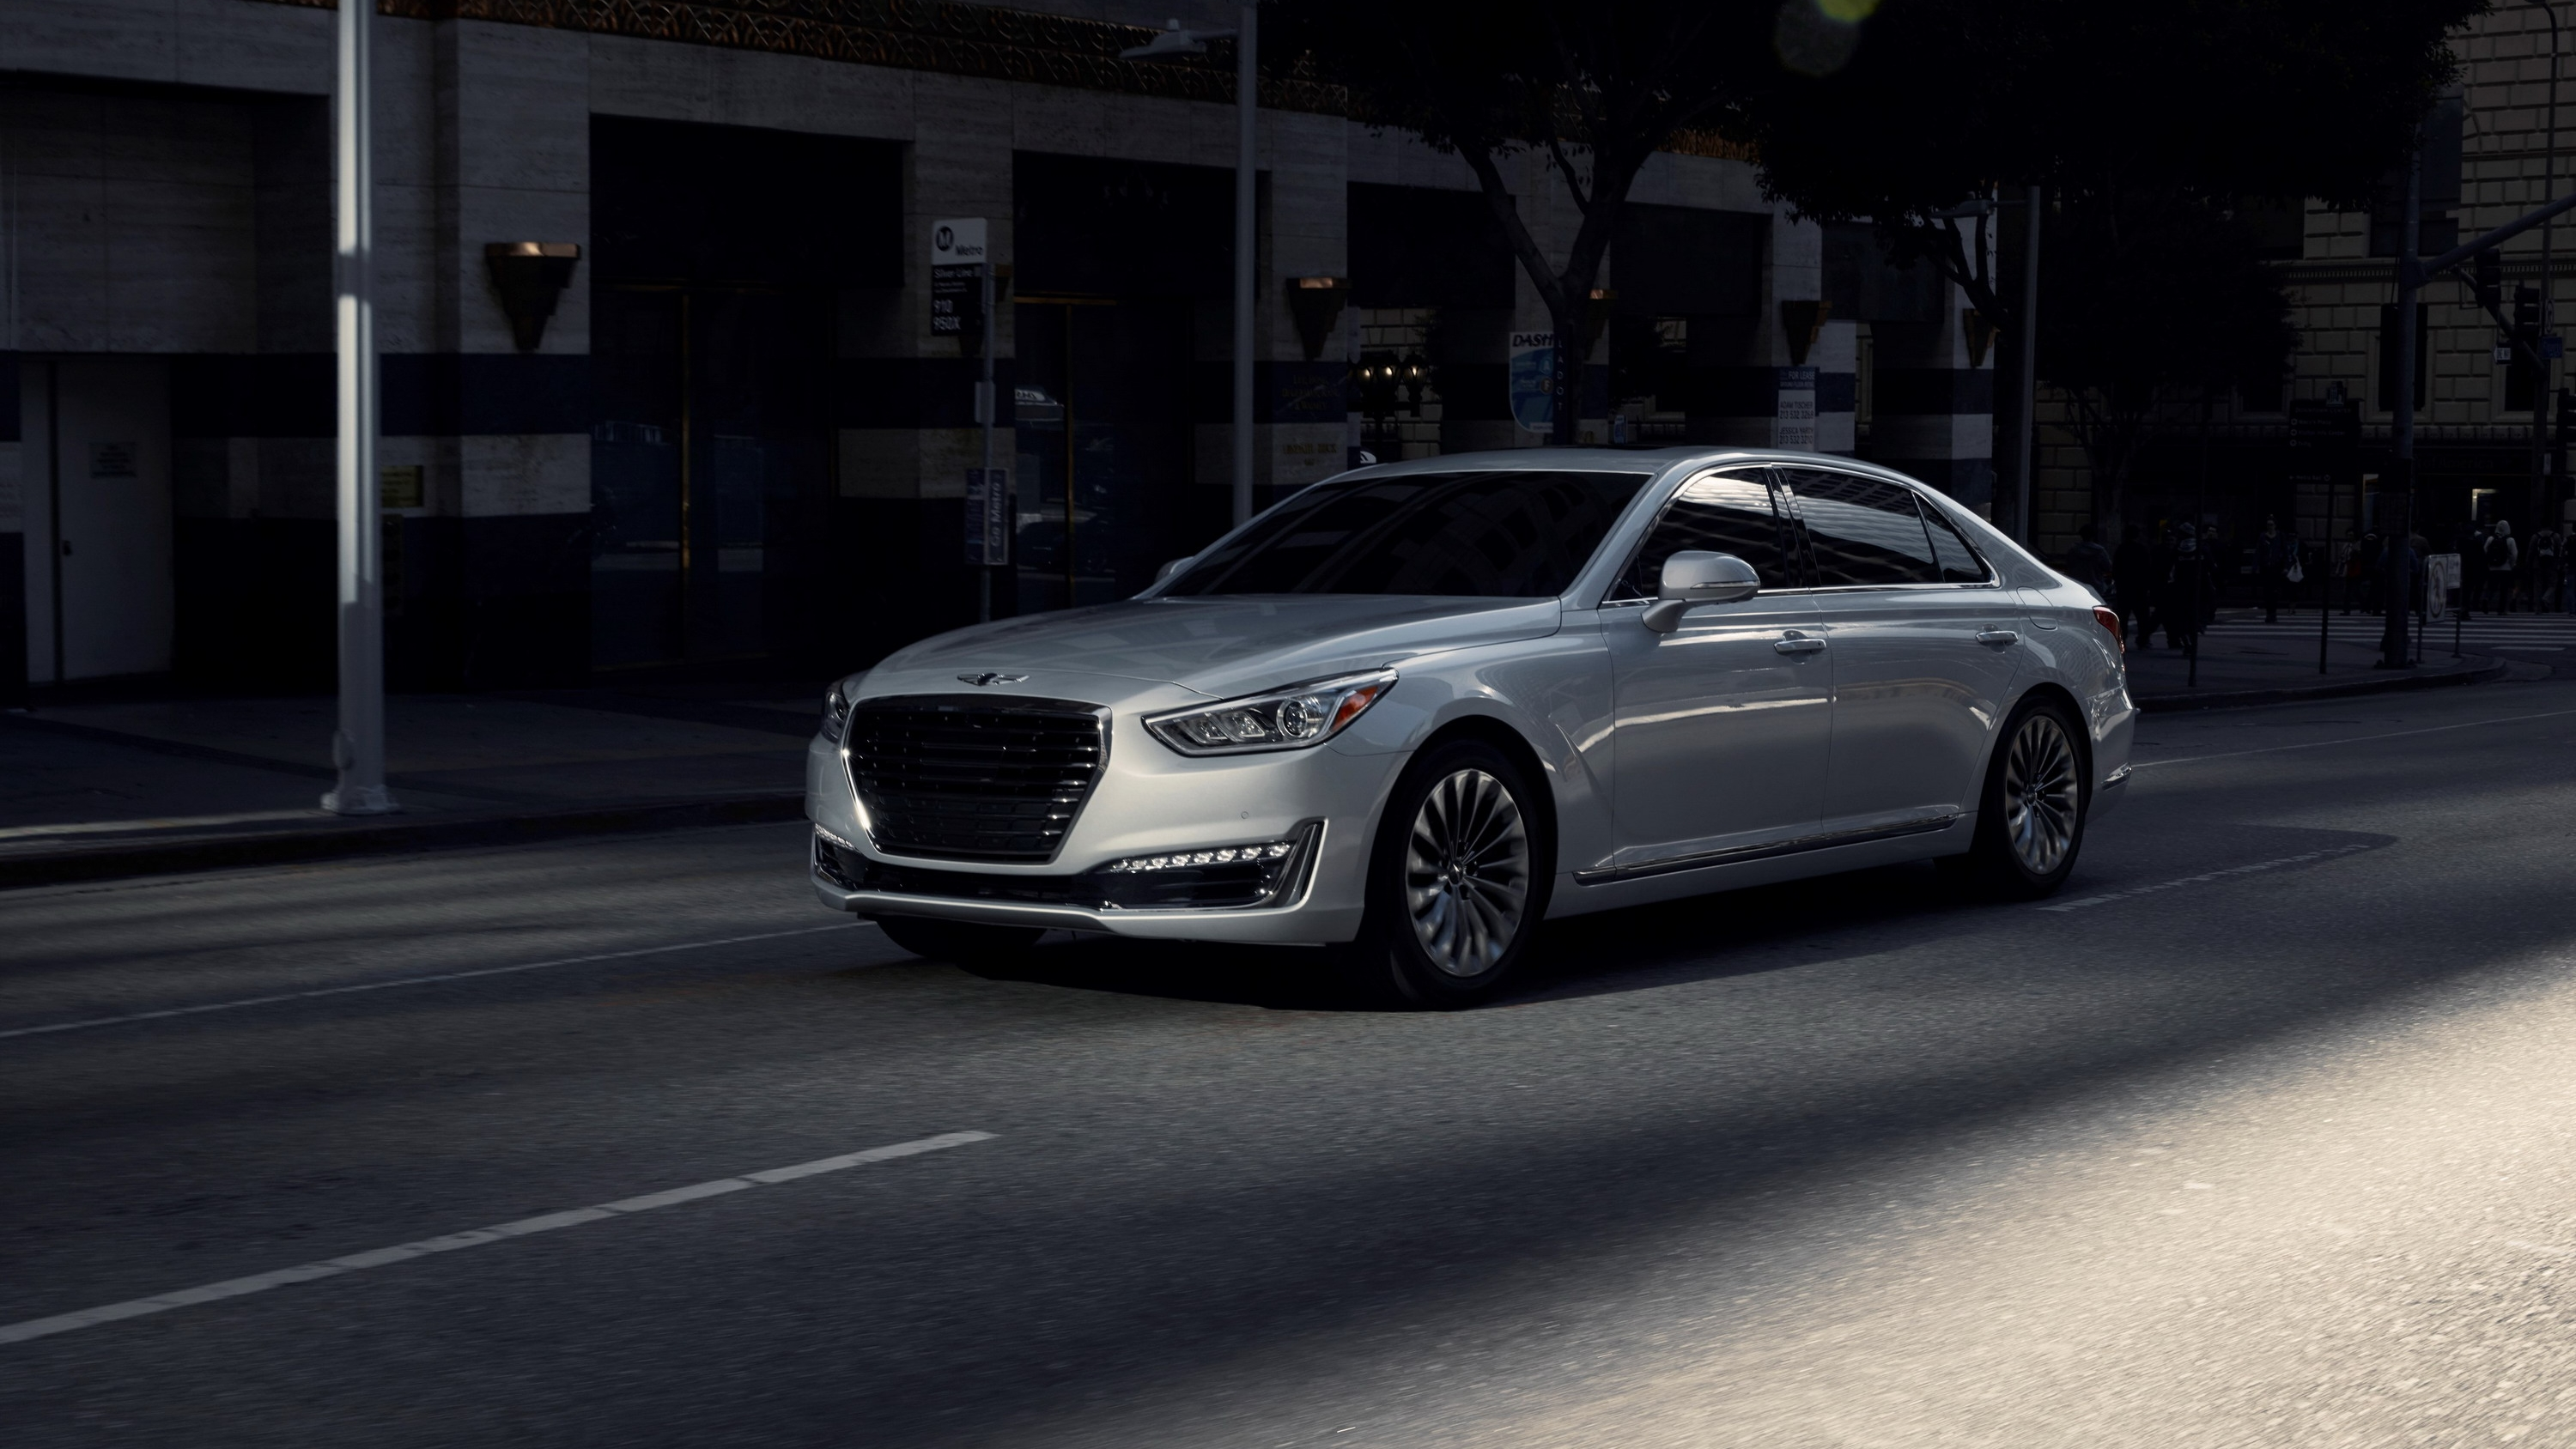 Genesis Rush To Separate From Hyundai Has All The Makings A